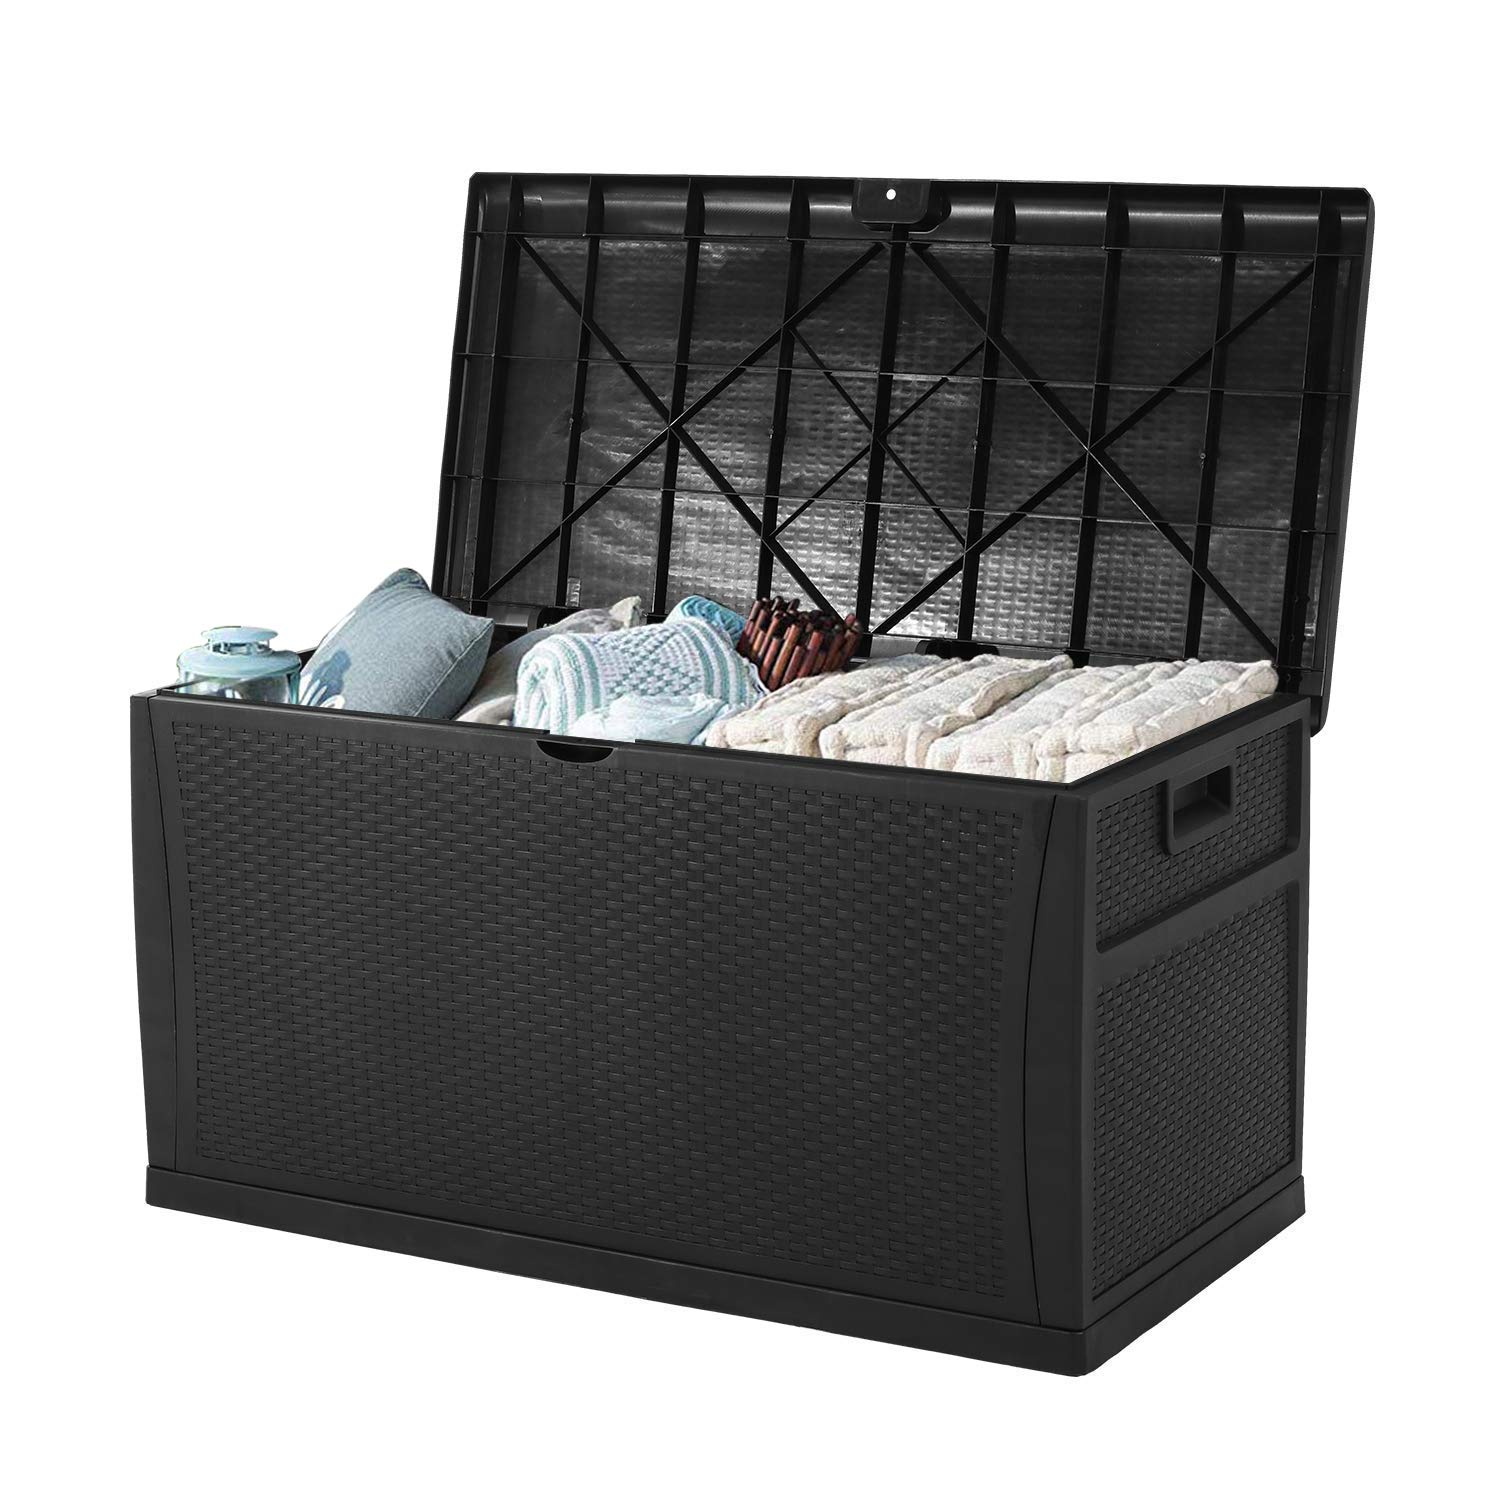 INTERGREAT Patio Deck Box Outdoors Waterproof Storage Backyard Furniture Rattan Container Cabinet 120 Gallon Black